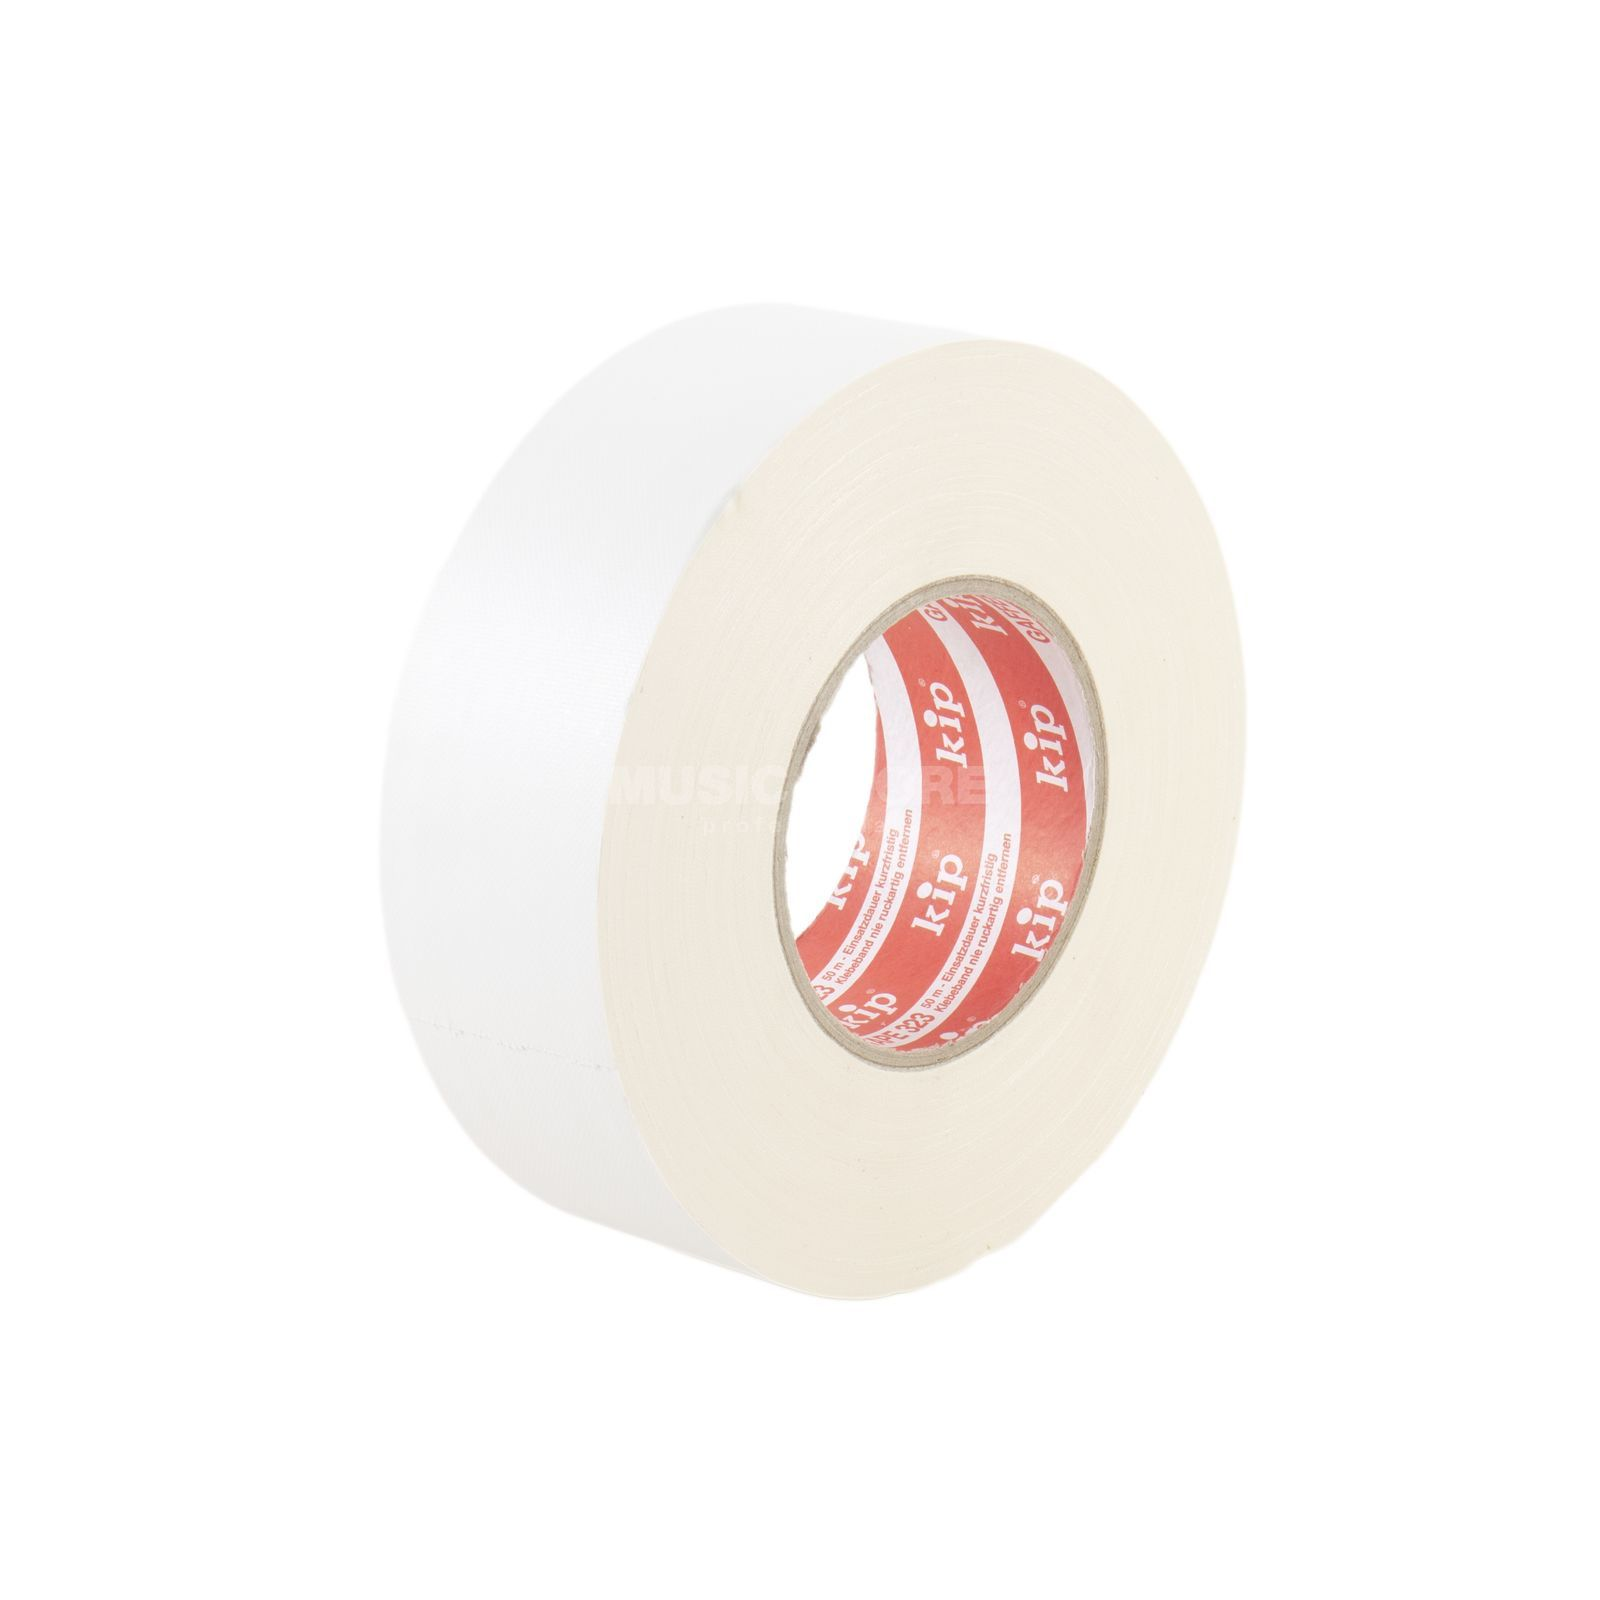 MUSIC STORE Gaffa-Tape Advanced white 923 Produktbillede